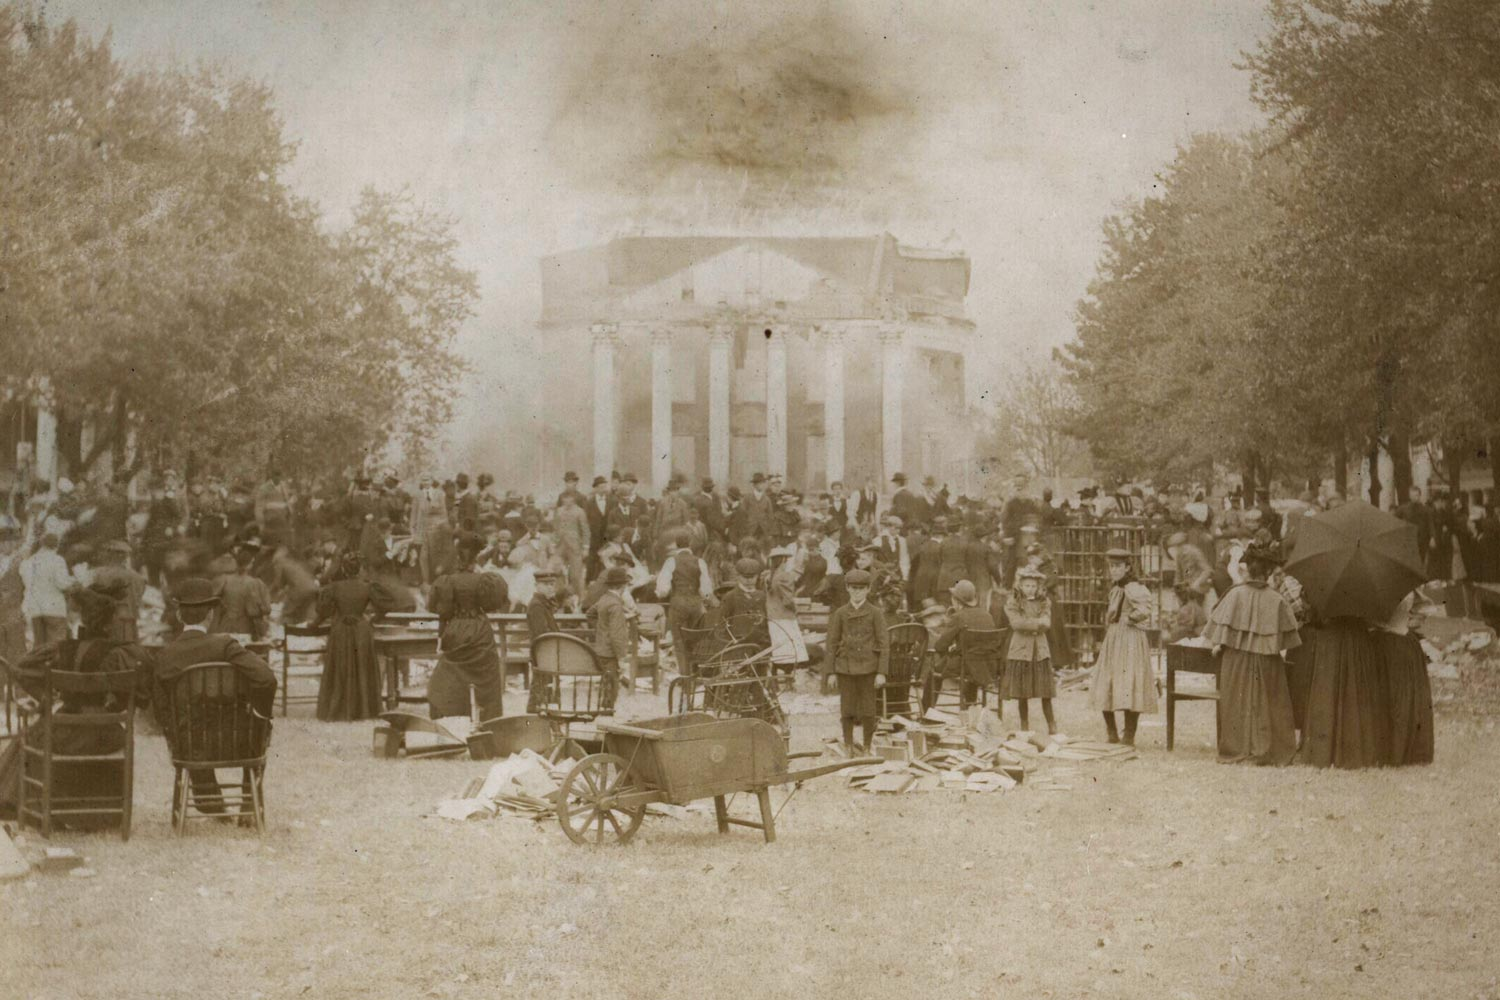 The fire that destroyed the Rotunda was a turning point in the University's history, giving rise to the first major round of new construction since the University's founding.